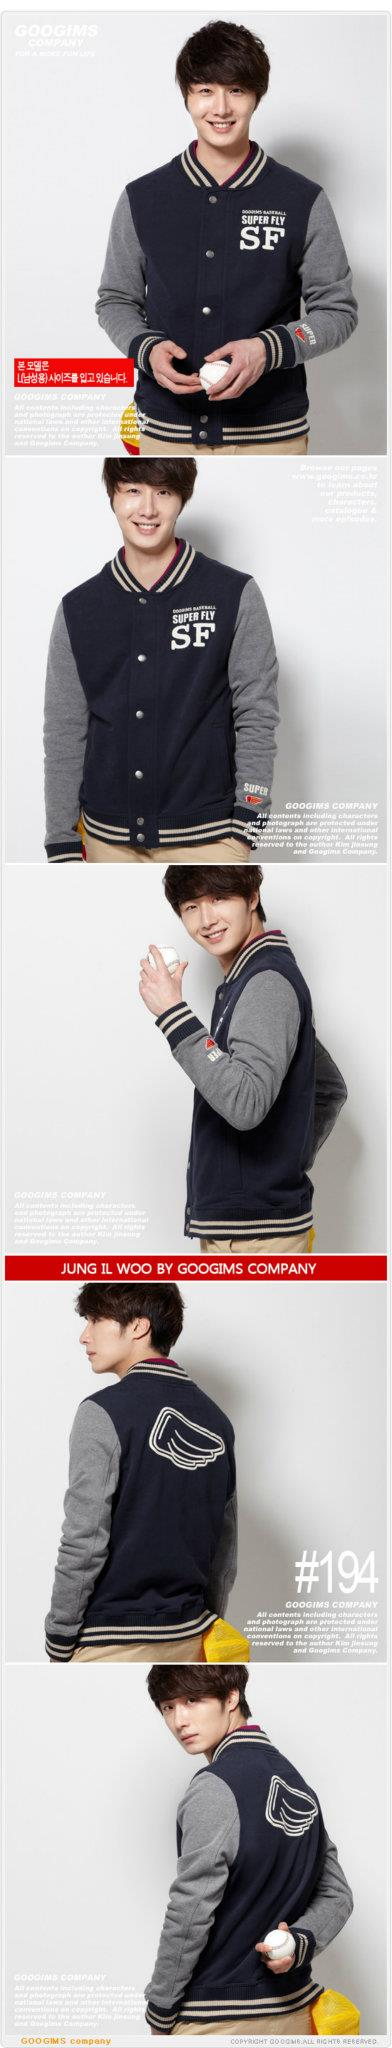 2011 10 Jung II-woo for Googims. Part 100052